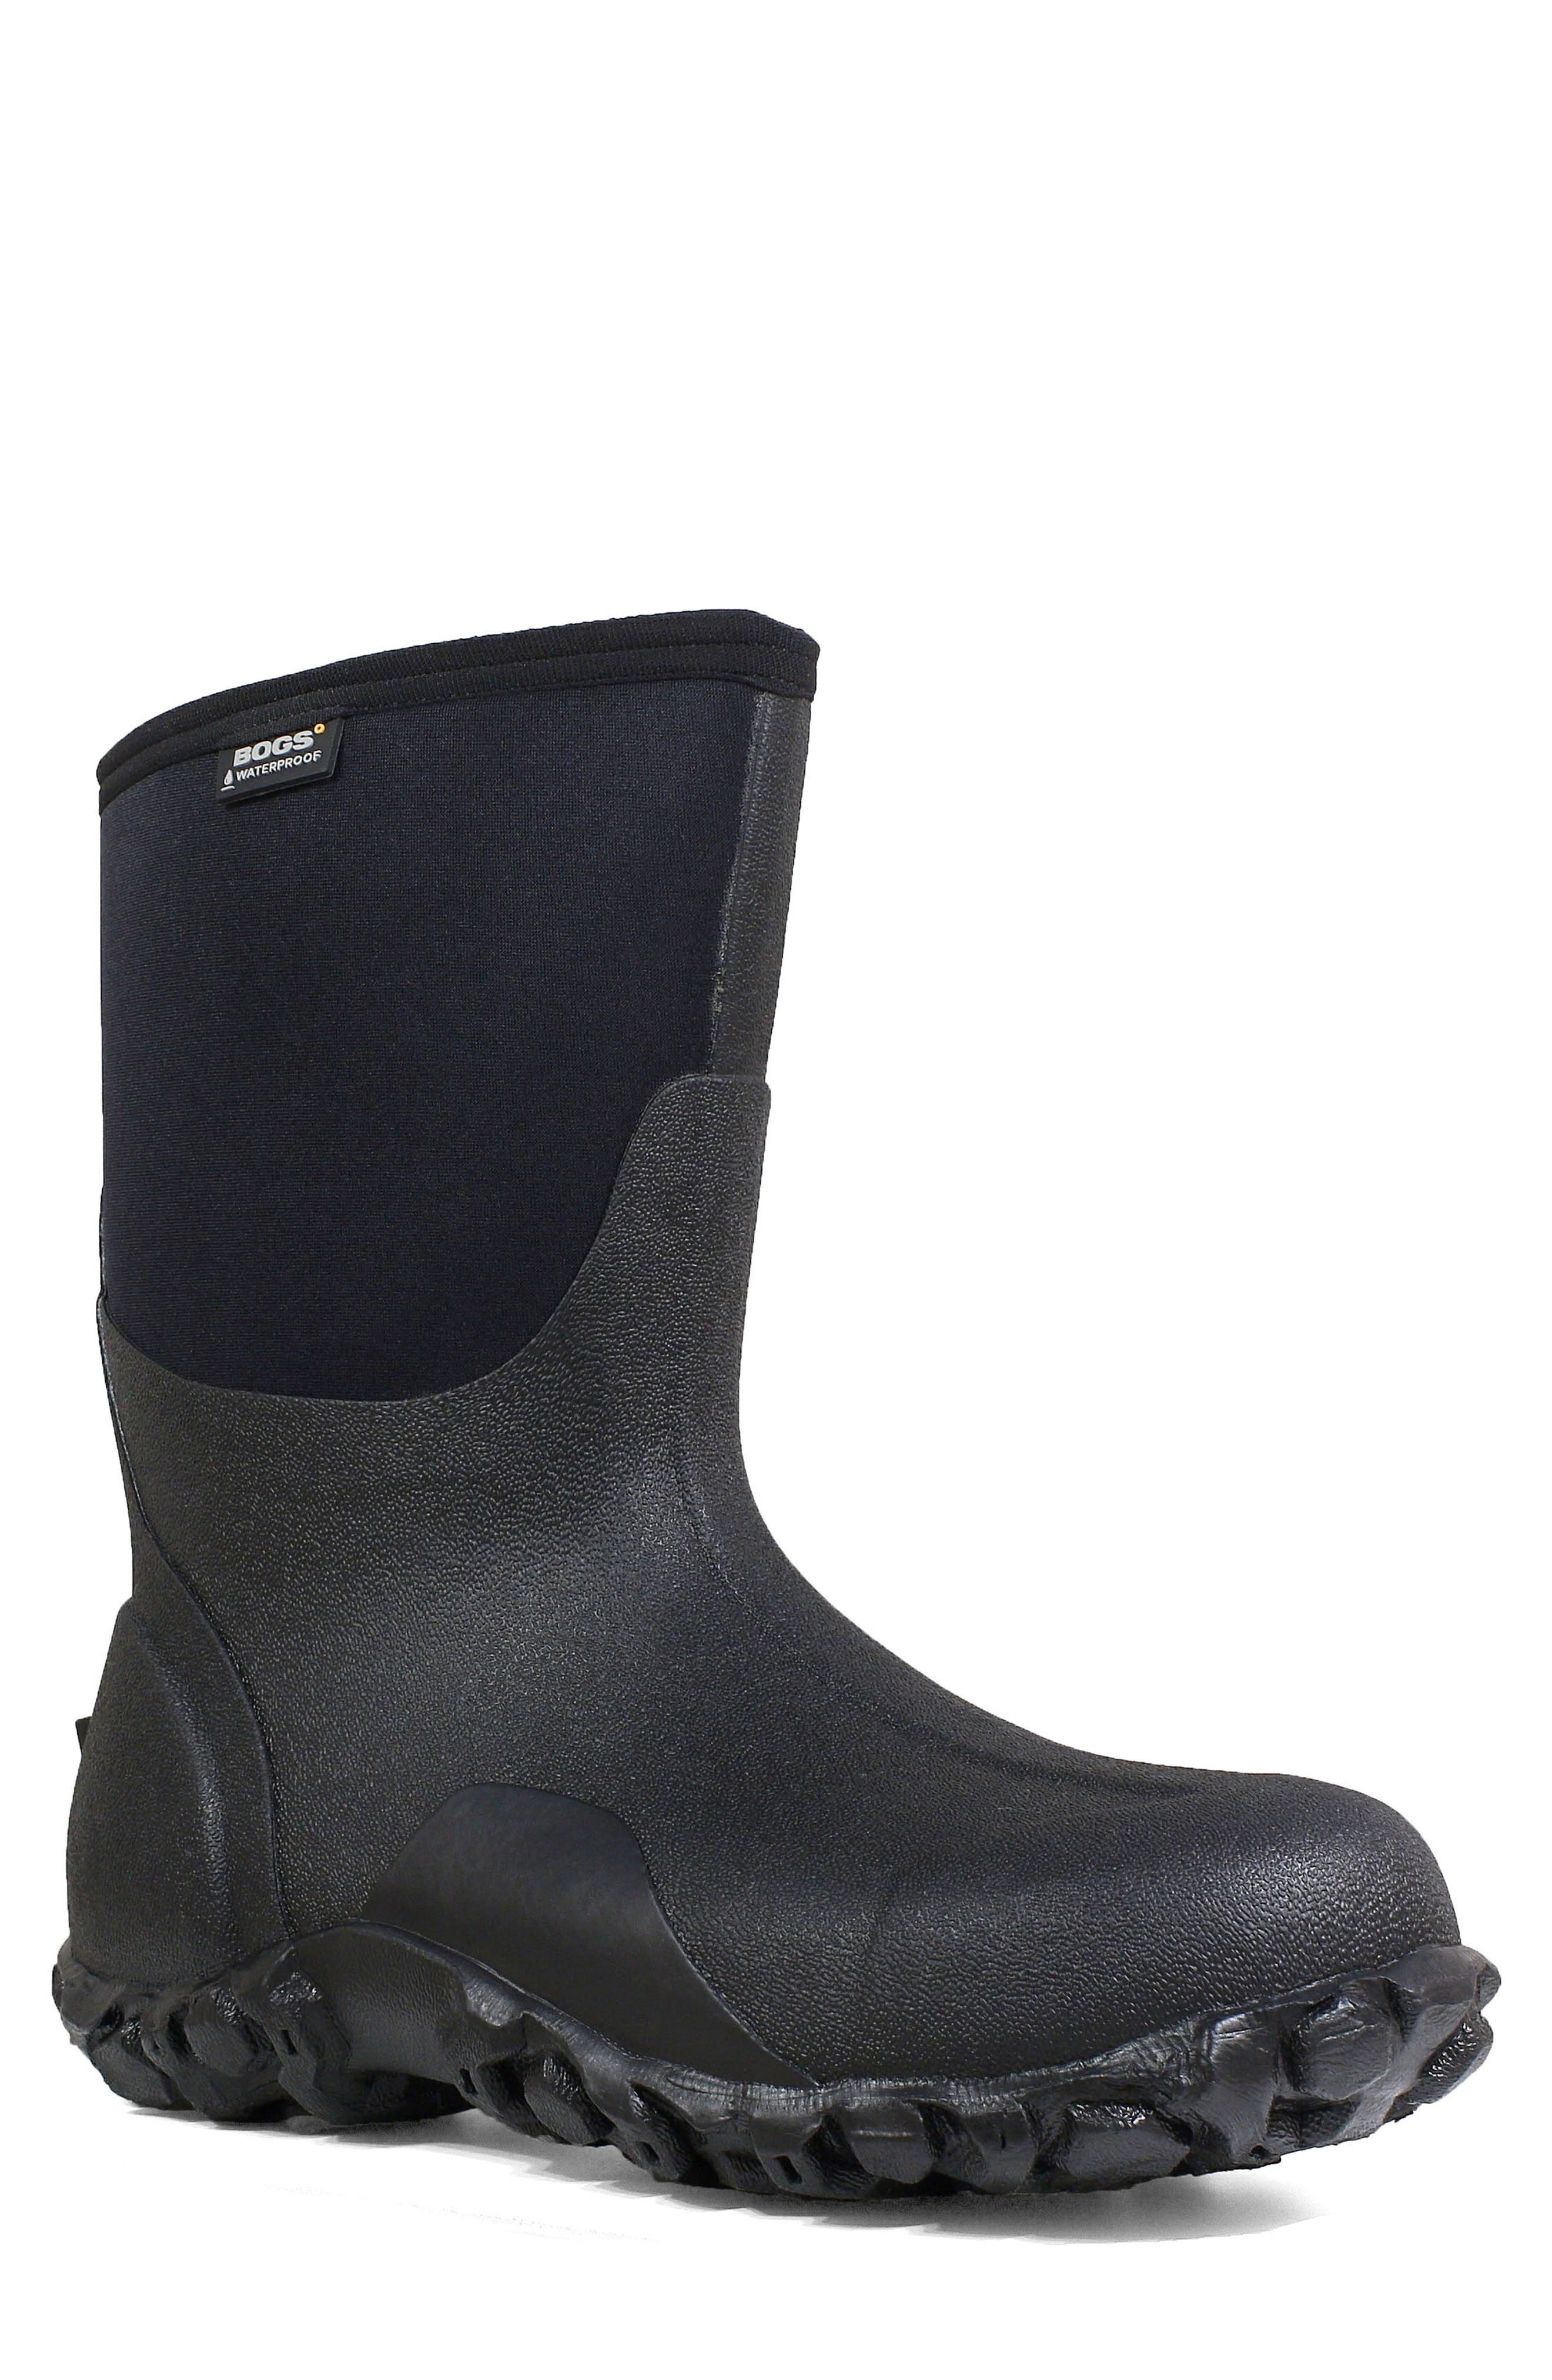 Classic Mid Waterproof Insulated Work Boot